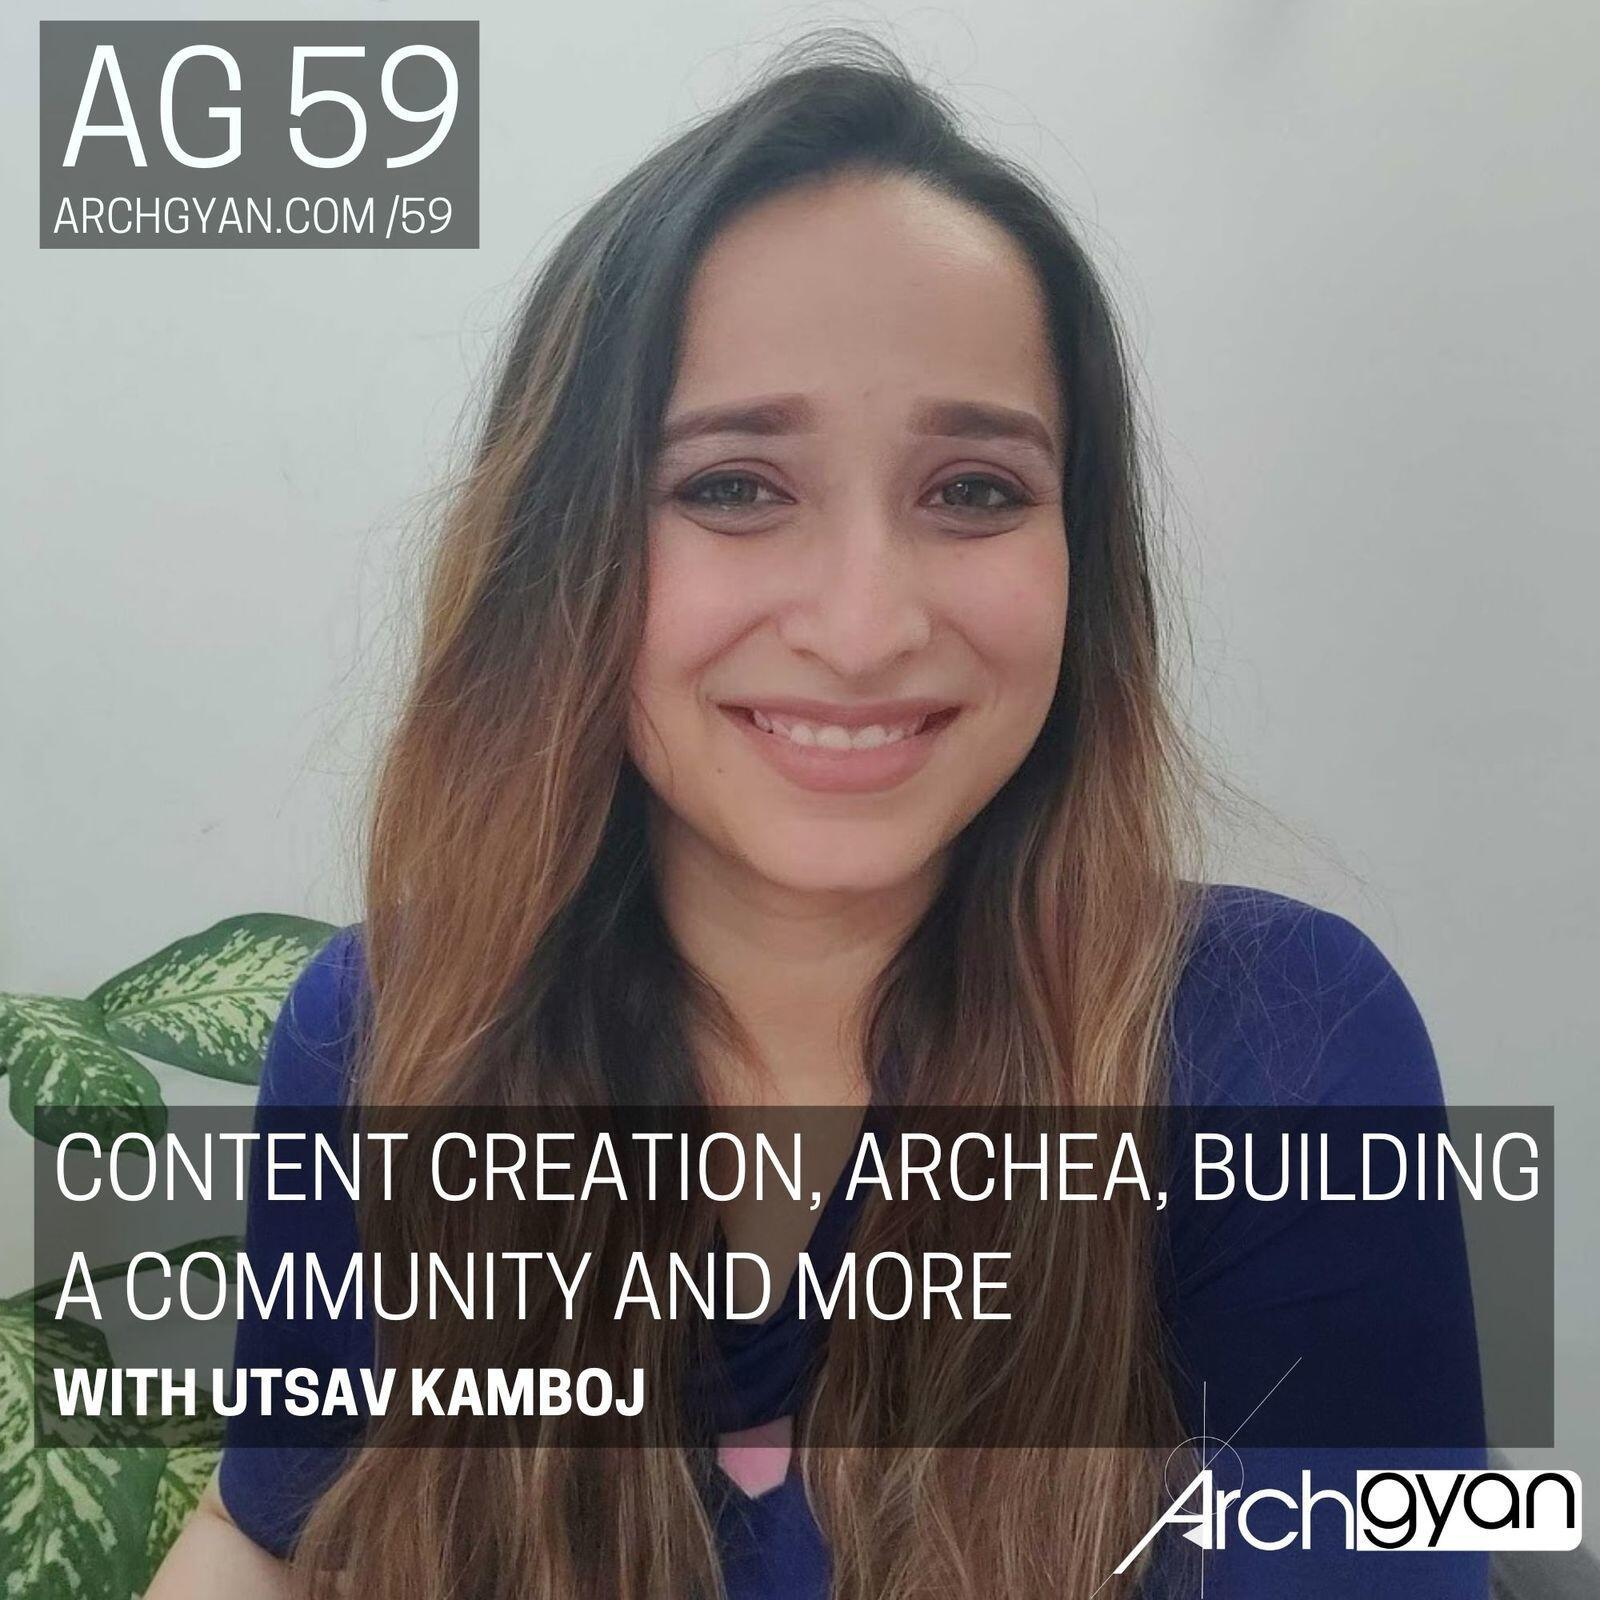 Content Creation, Archea, Building a Community and more with Utsav Kamboj | AG 59